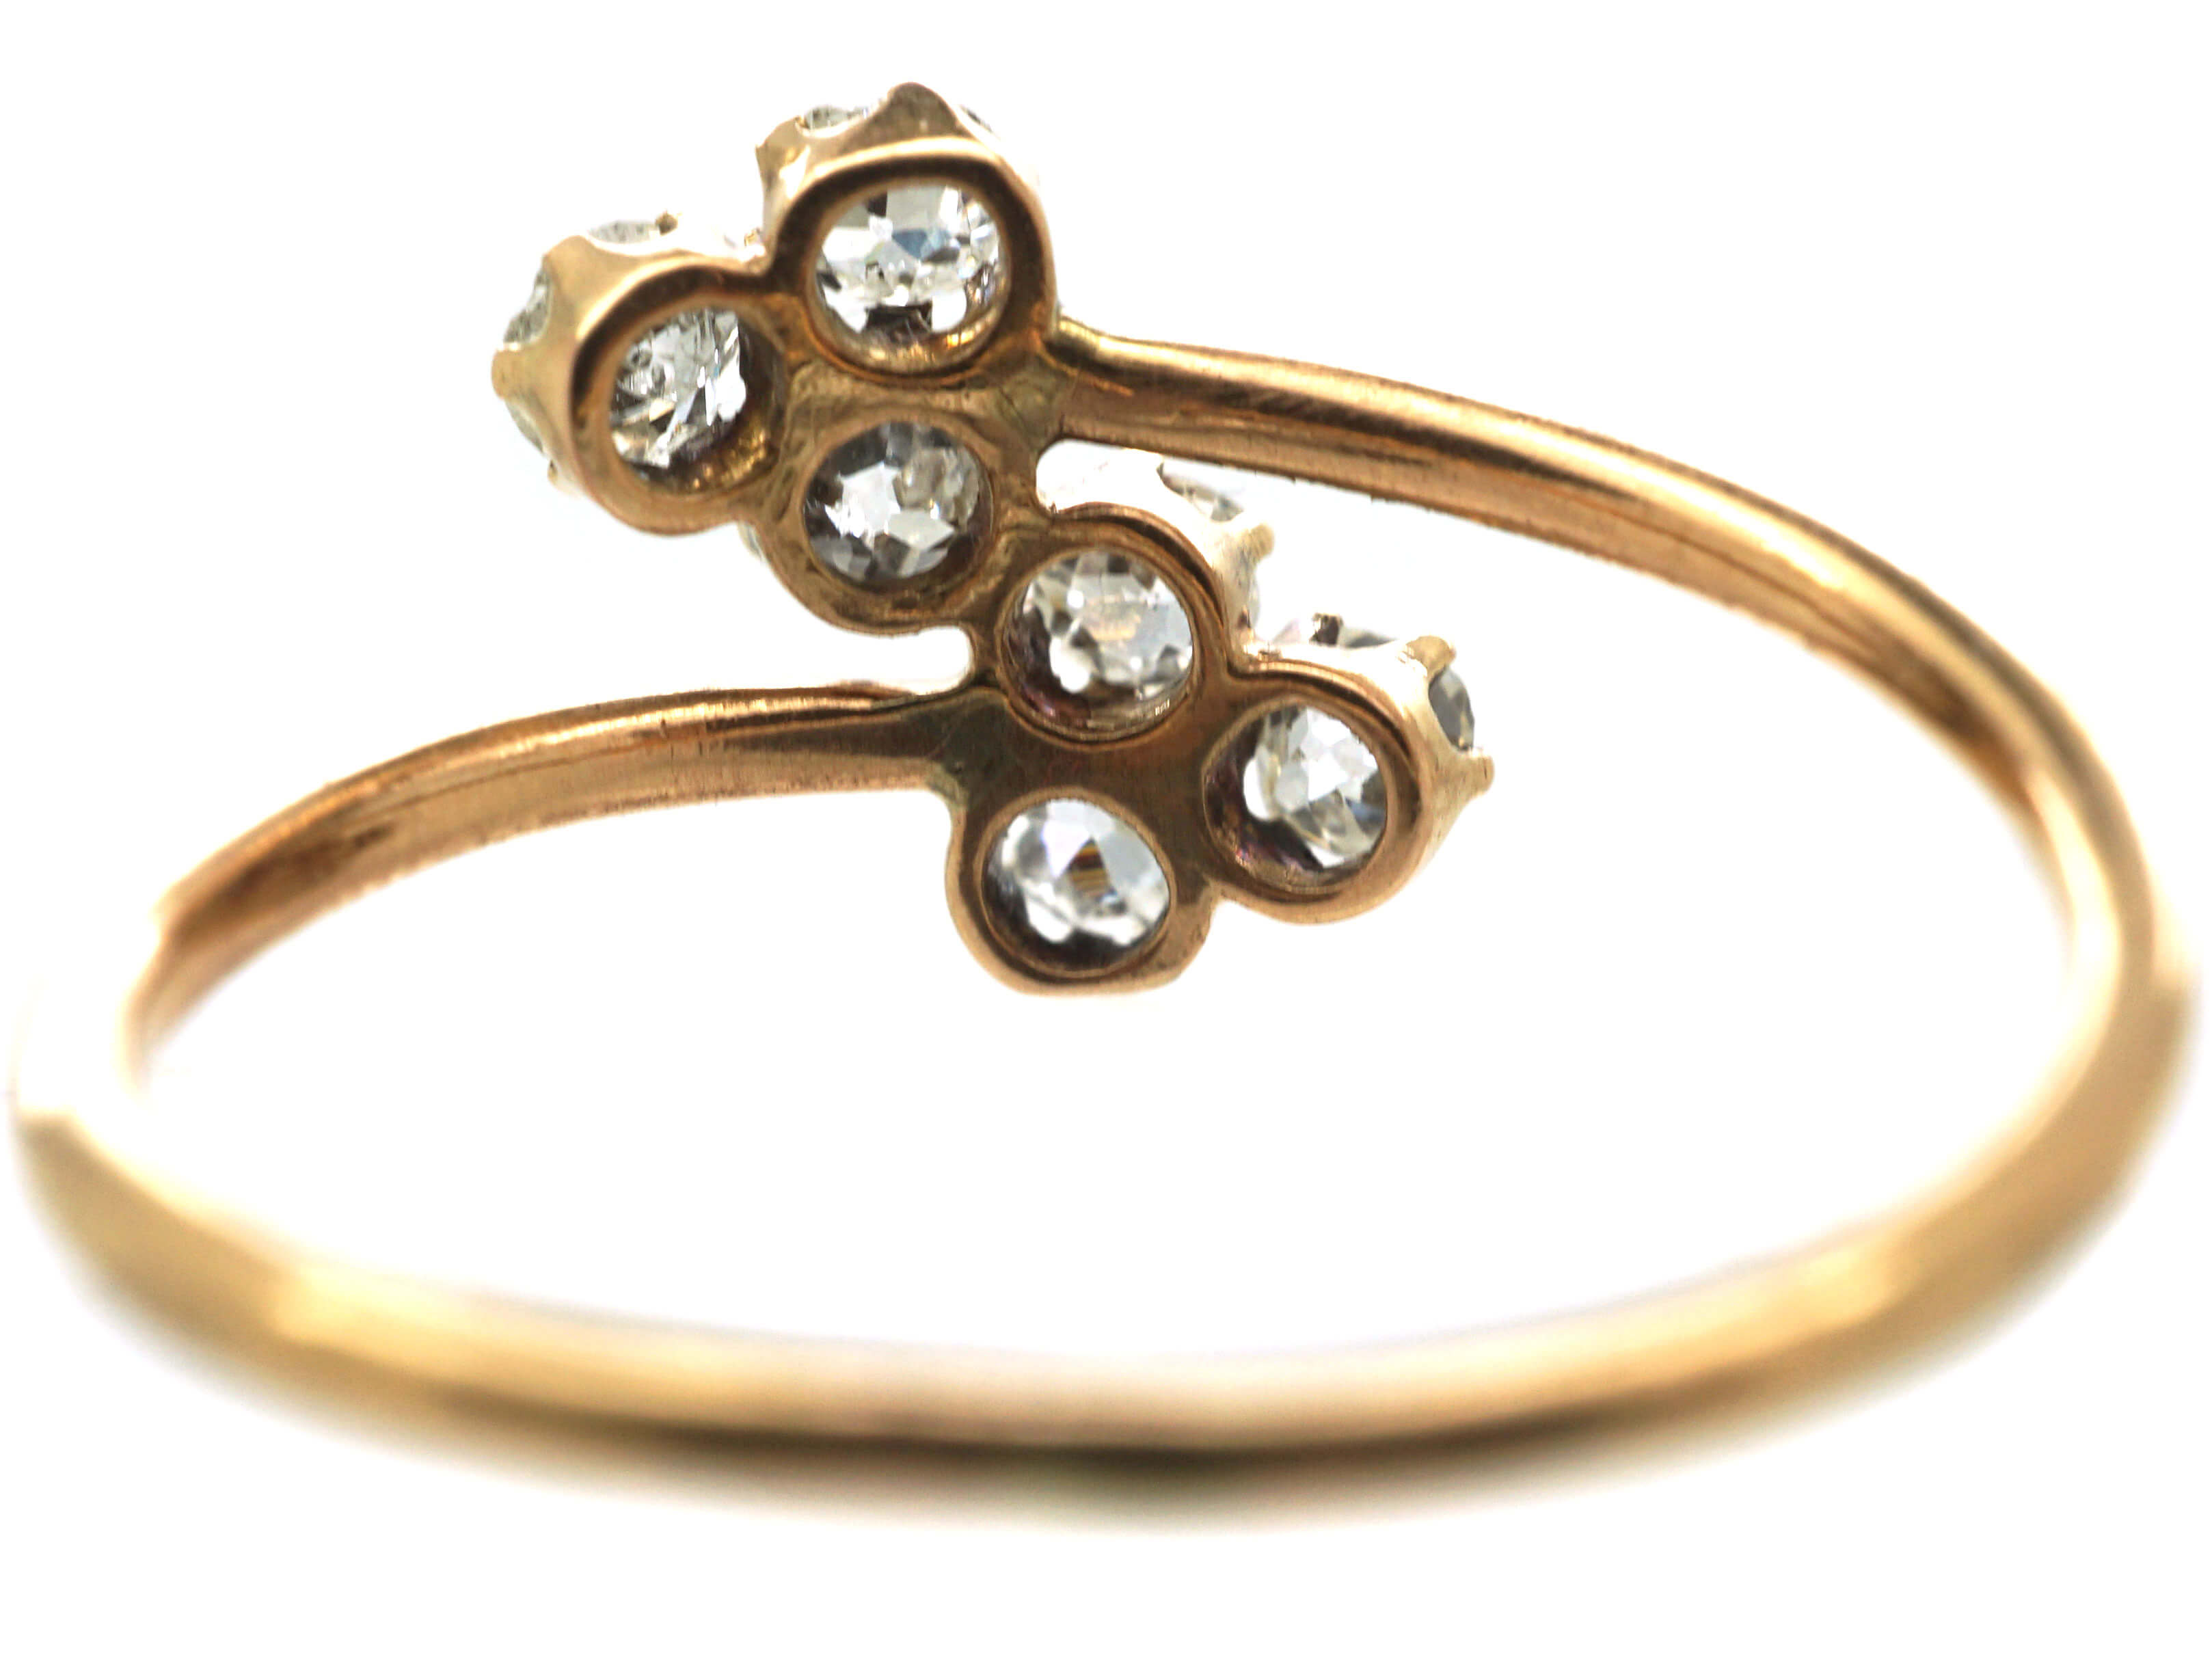 Edwardian 14ct Gold Double Clover Crossover Ring set with Diamonds